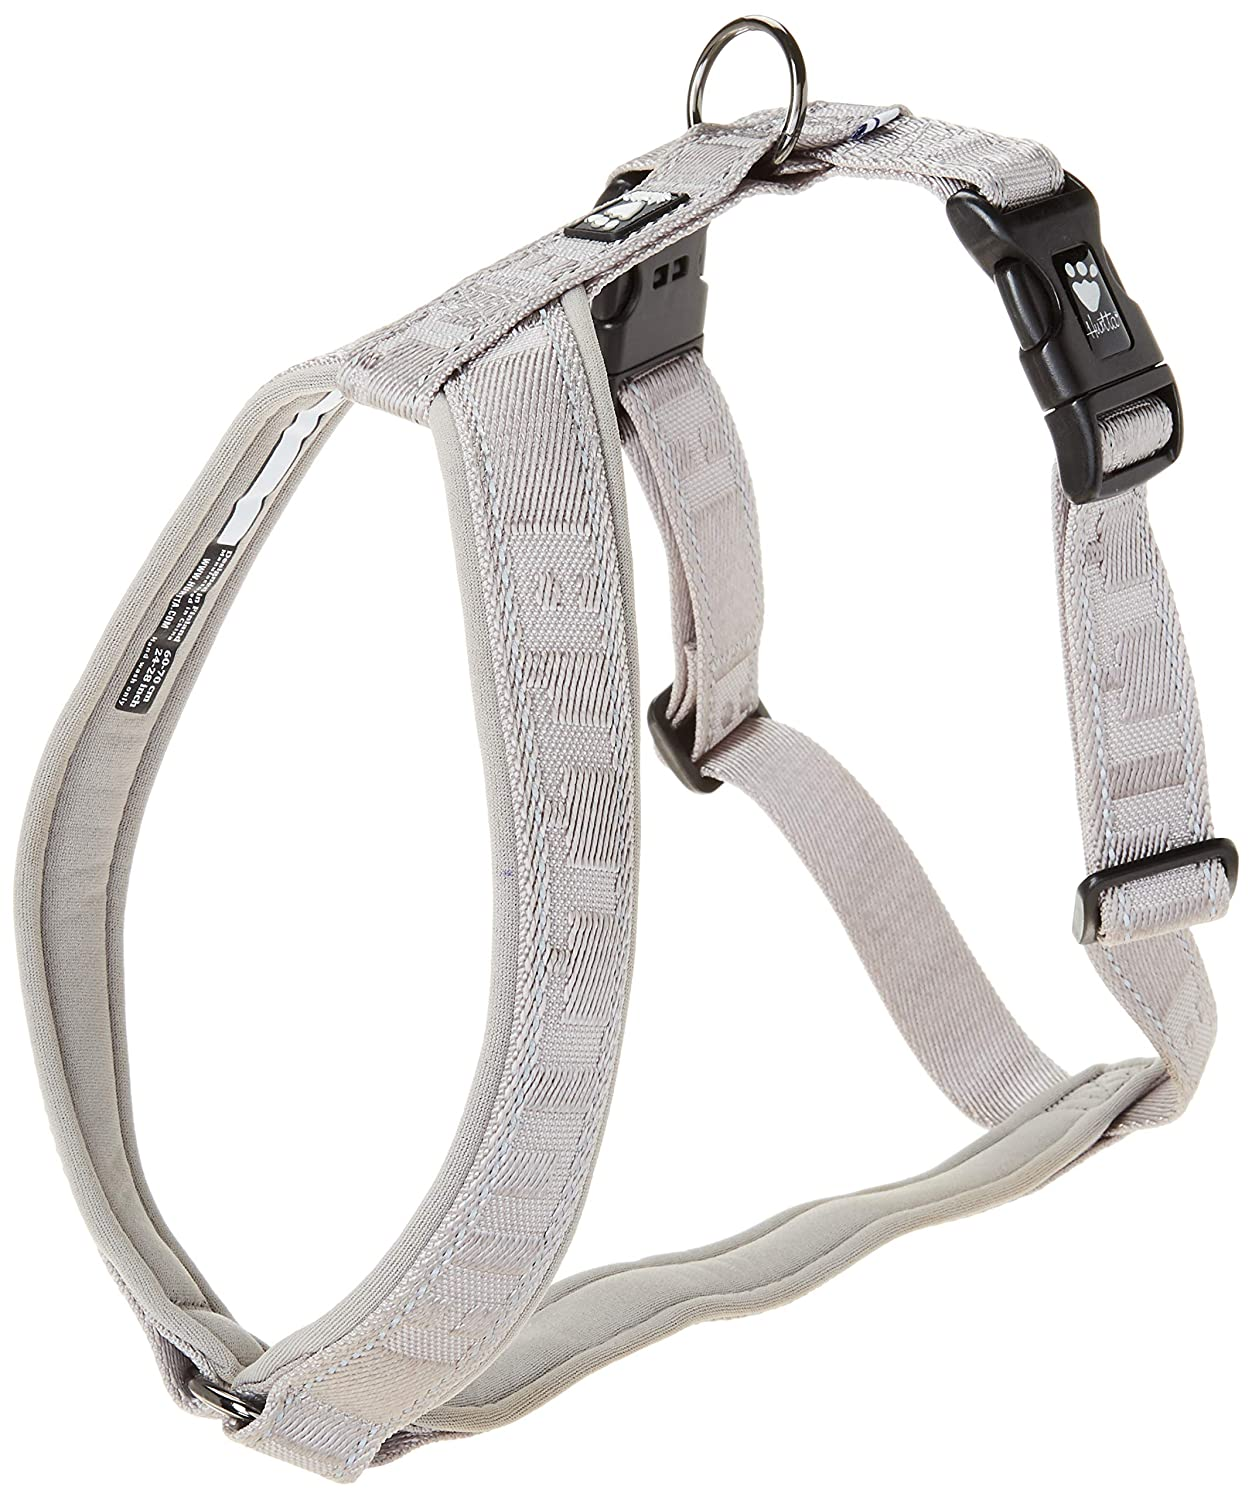 Hurtta Casual Perro Acolchado Y-Harness, Ceniza, 71 cm: Amazon.es ...